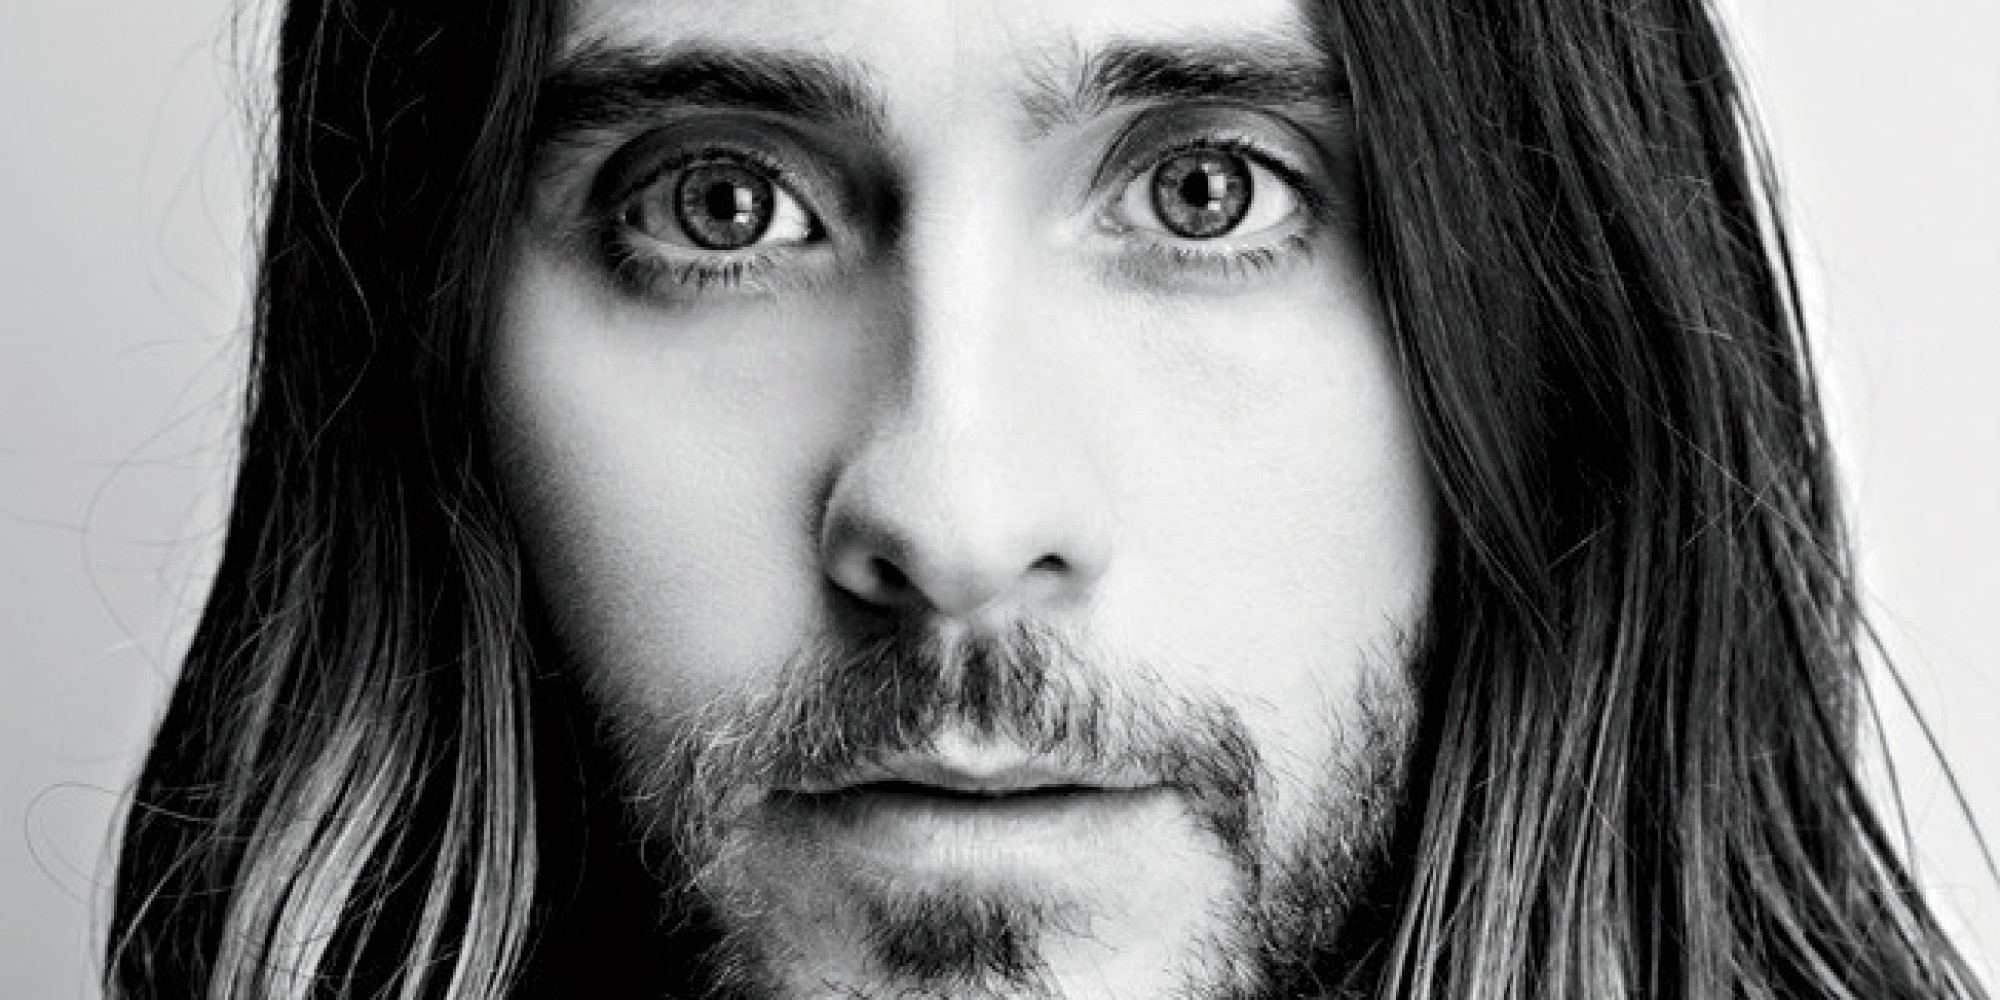 Jared leto images jared leto hd wallpaper and background photos - Jared Leto Images Jared Leto Hd Wallpaper And Background Photos 38